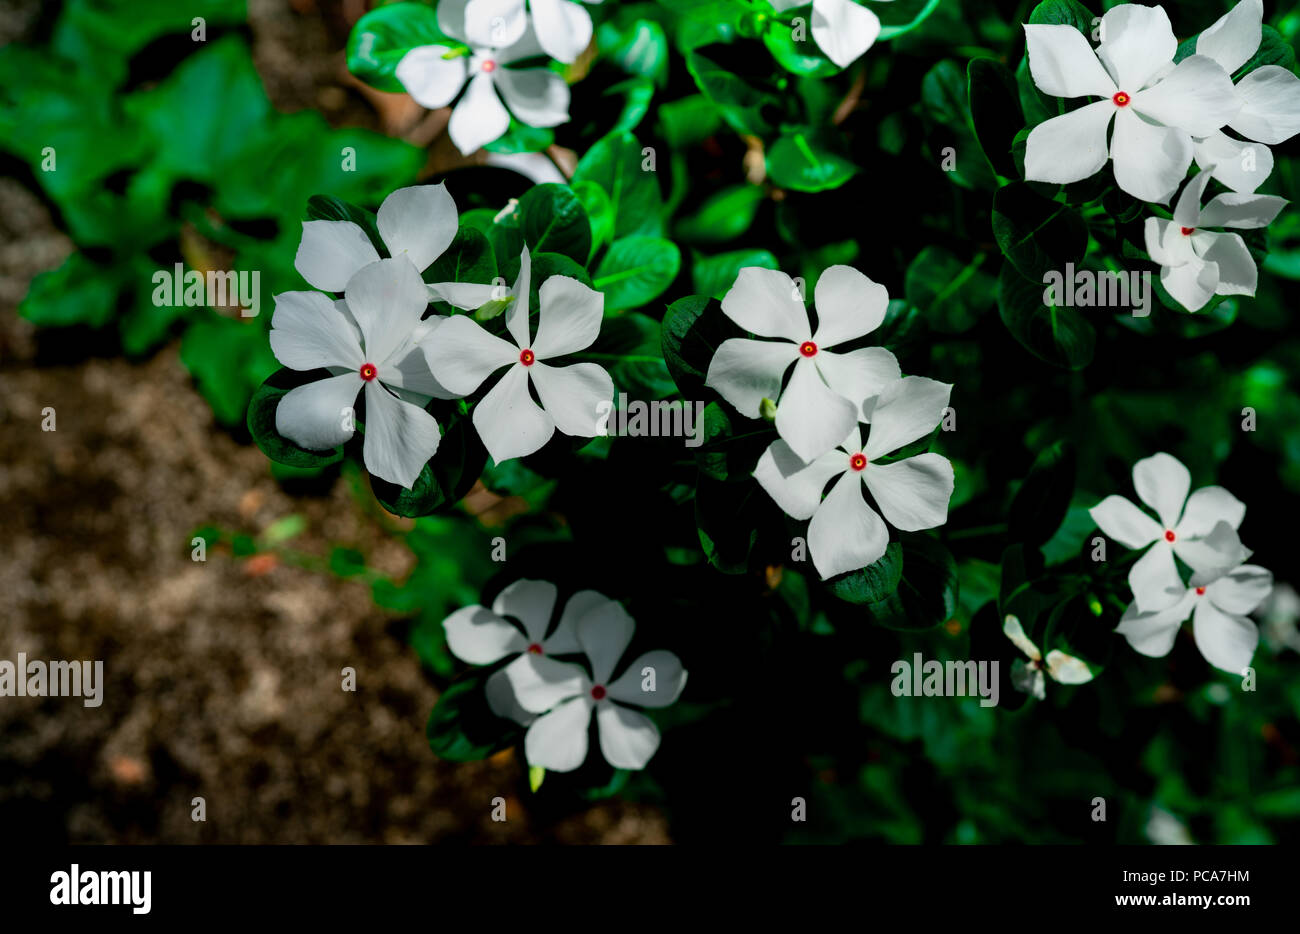 Catharanthus roseus west indian periwinkle madagascar periwinkle catharanthus roseus west indian periwinkle madagascar periwinkle beautiful white flower with pink at center green leaves on black background gree mightylinksfo